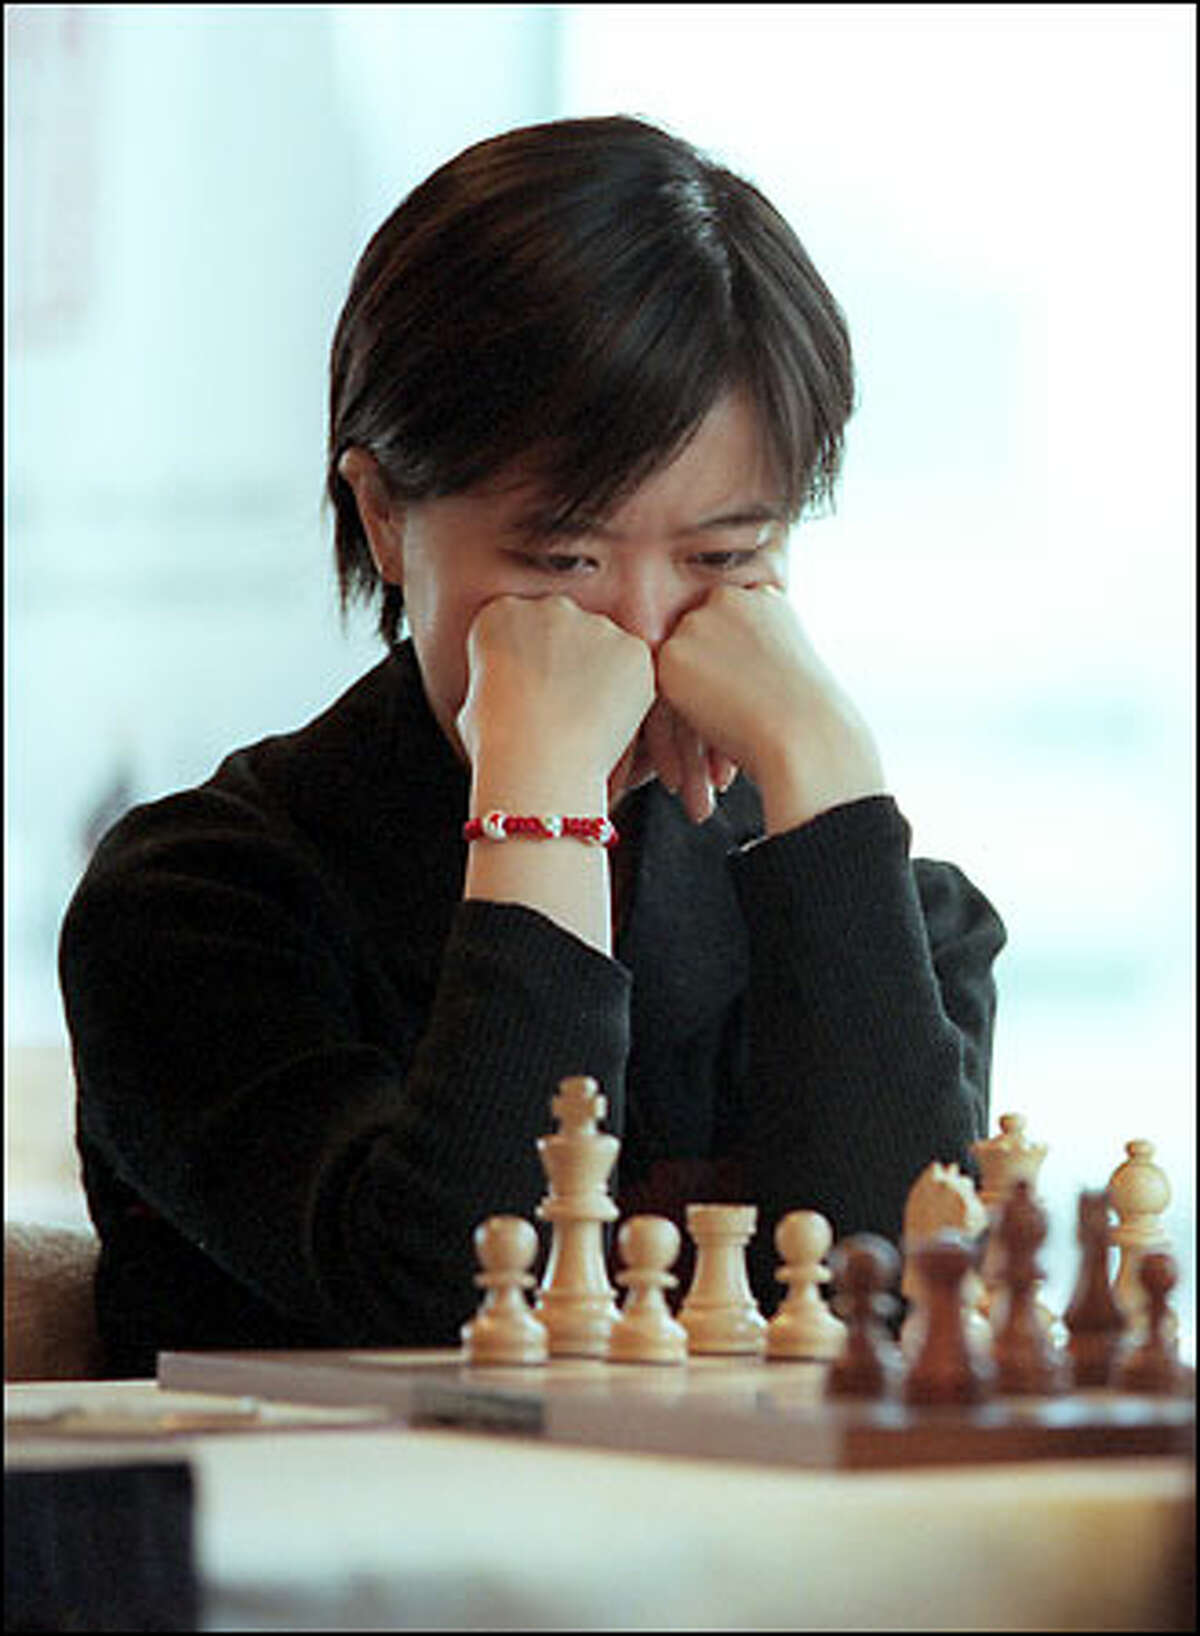 China's women chess players, such as grandmaster Xu Yuhua, are especially strong. Yuhua keeps her eyes on the board during yesterday's game against international master Irina Krush.